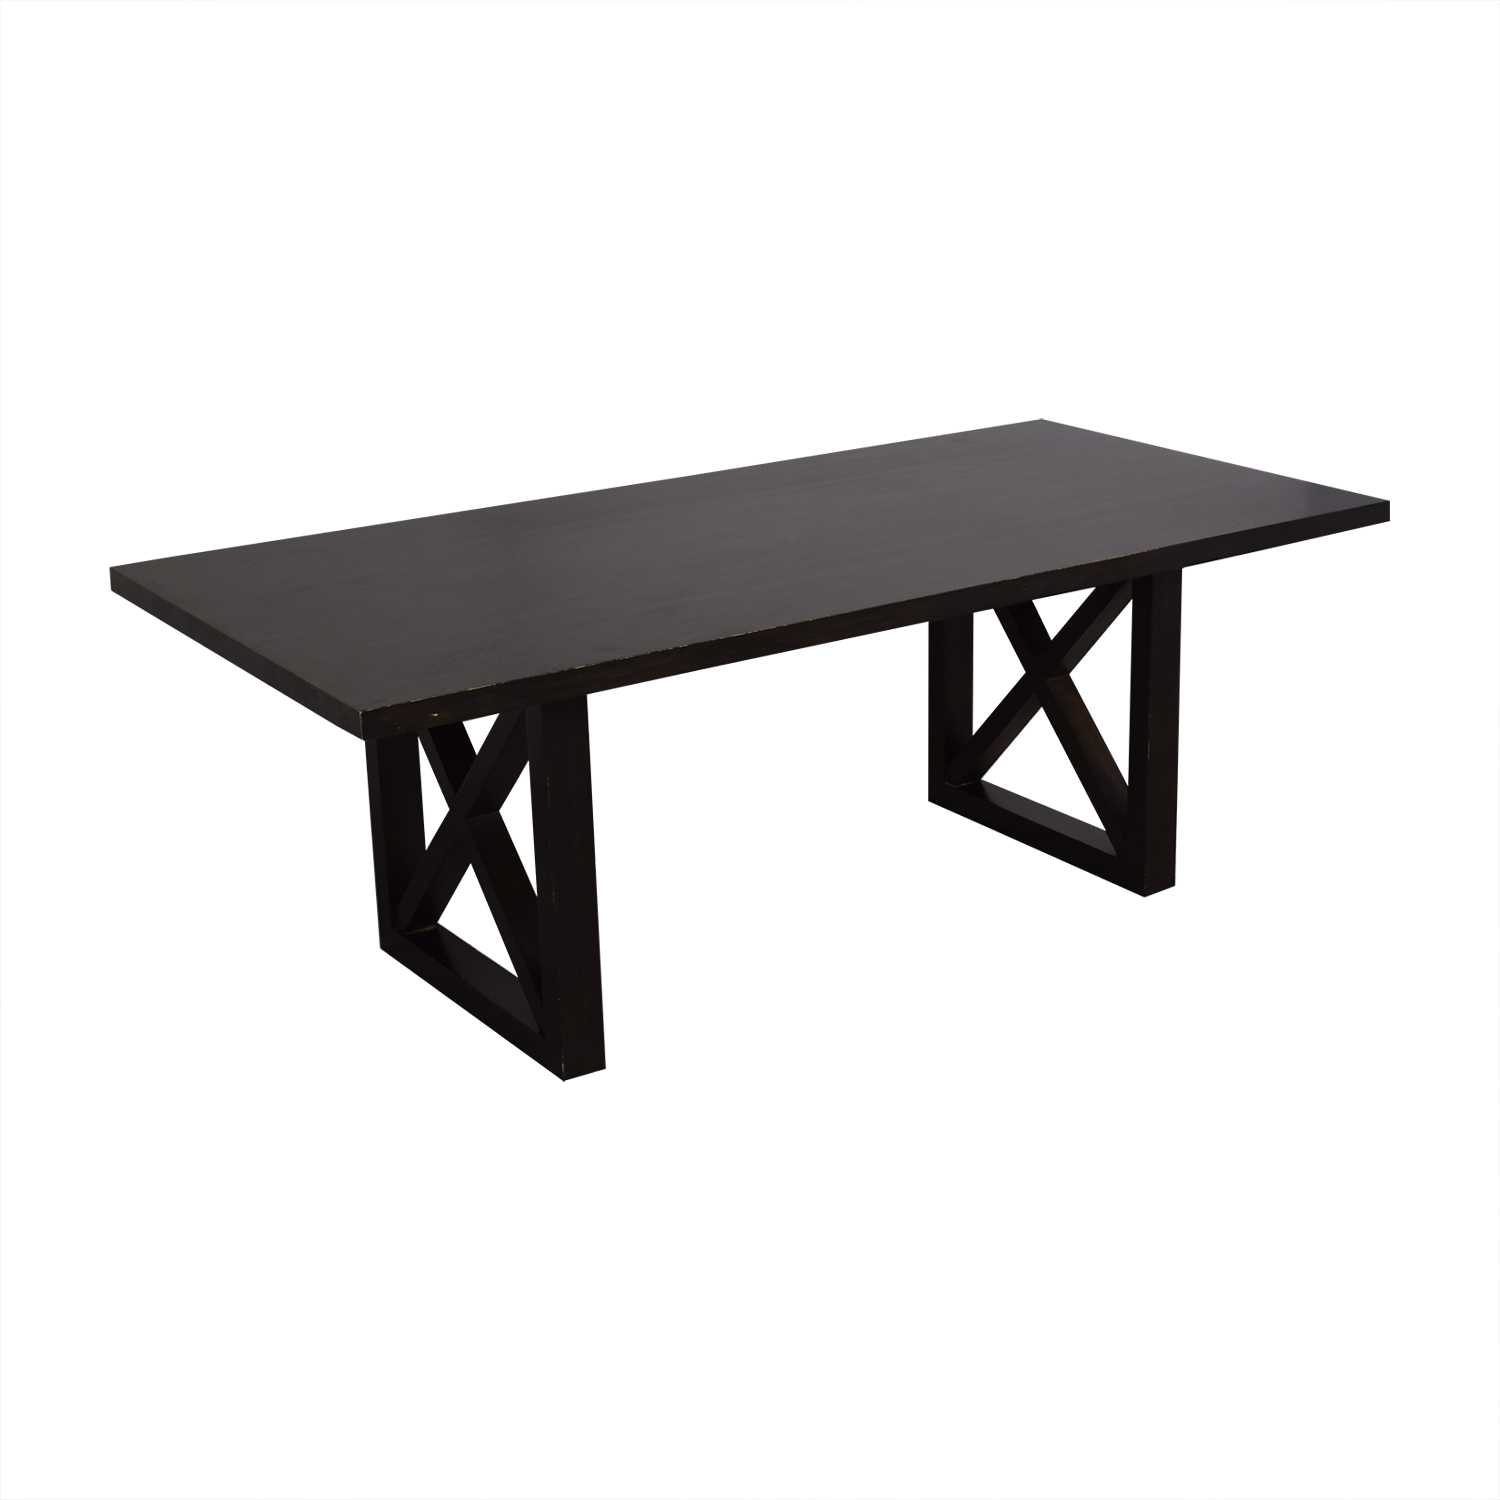 Pottery Barn Pottery Barn Extendable Dining Table price